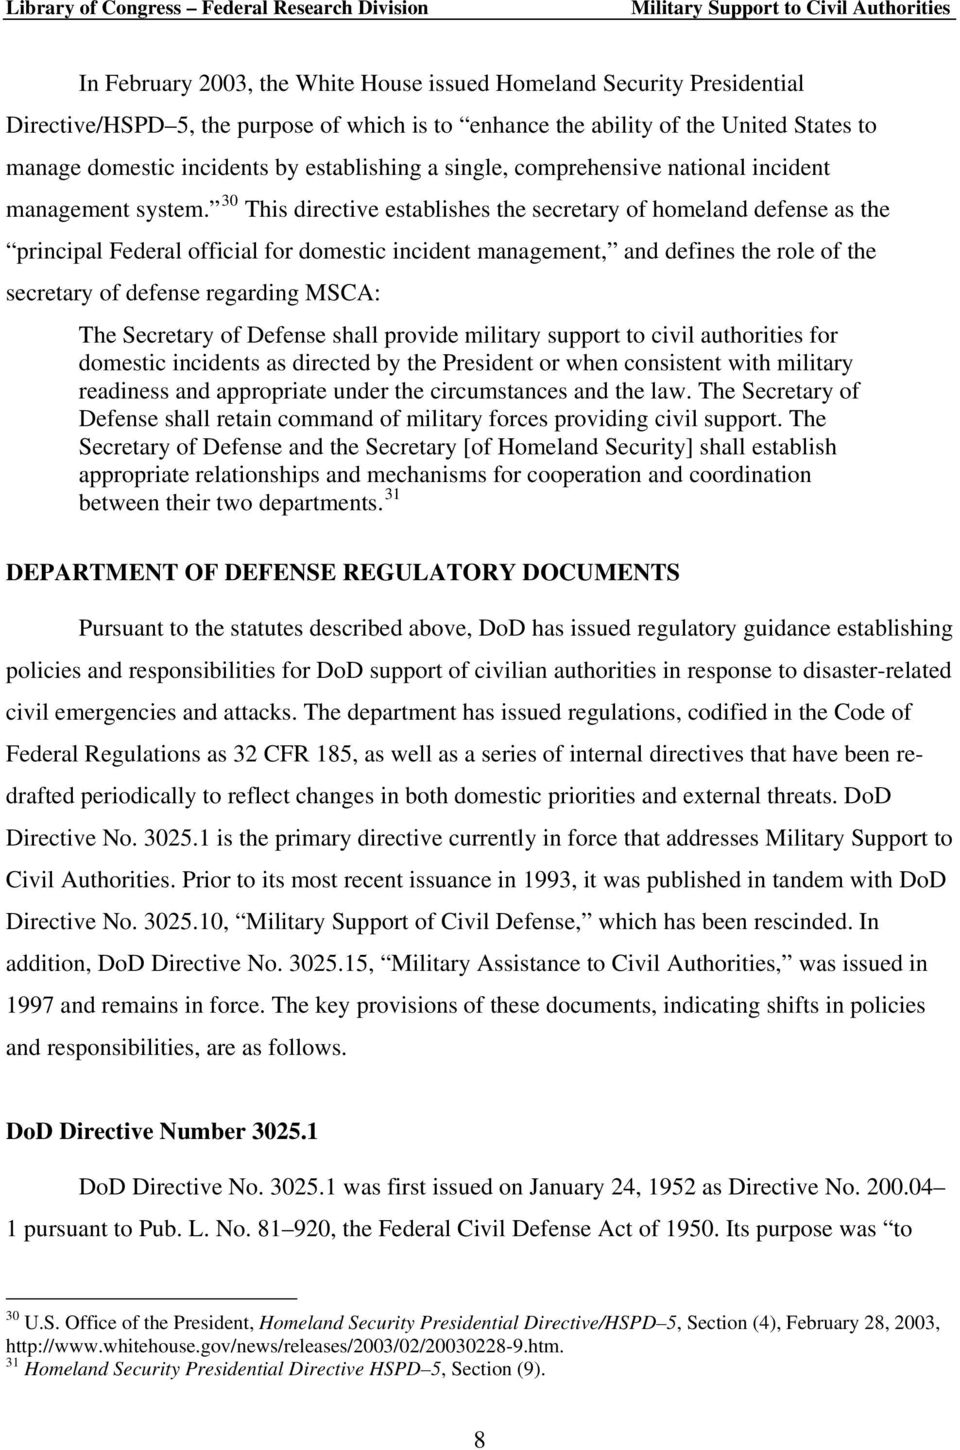 30 This directive establishes the secretary of homeland defense as the principal Federal official for domestic incident management, and defines the role of the secretary of defense regarding MSCA: